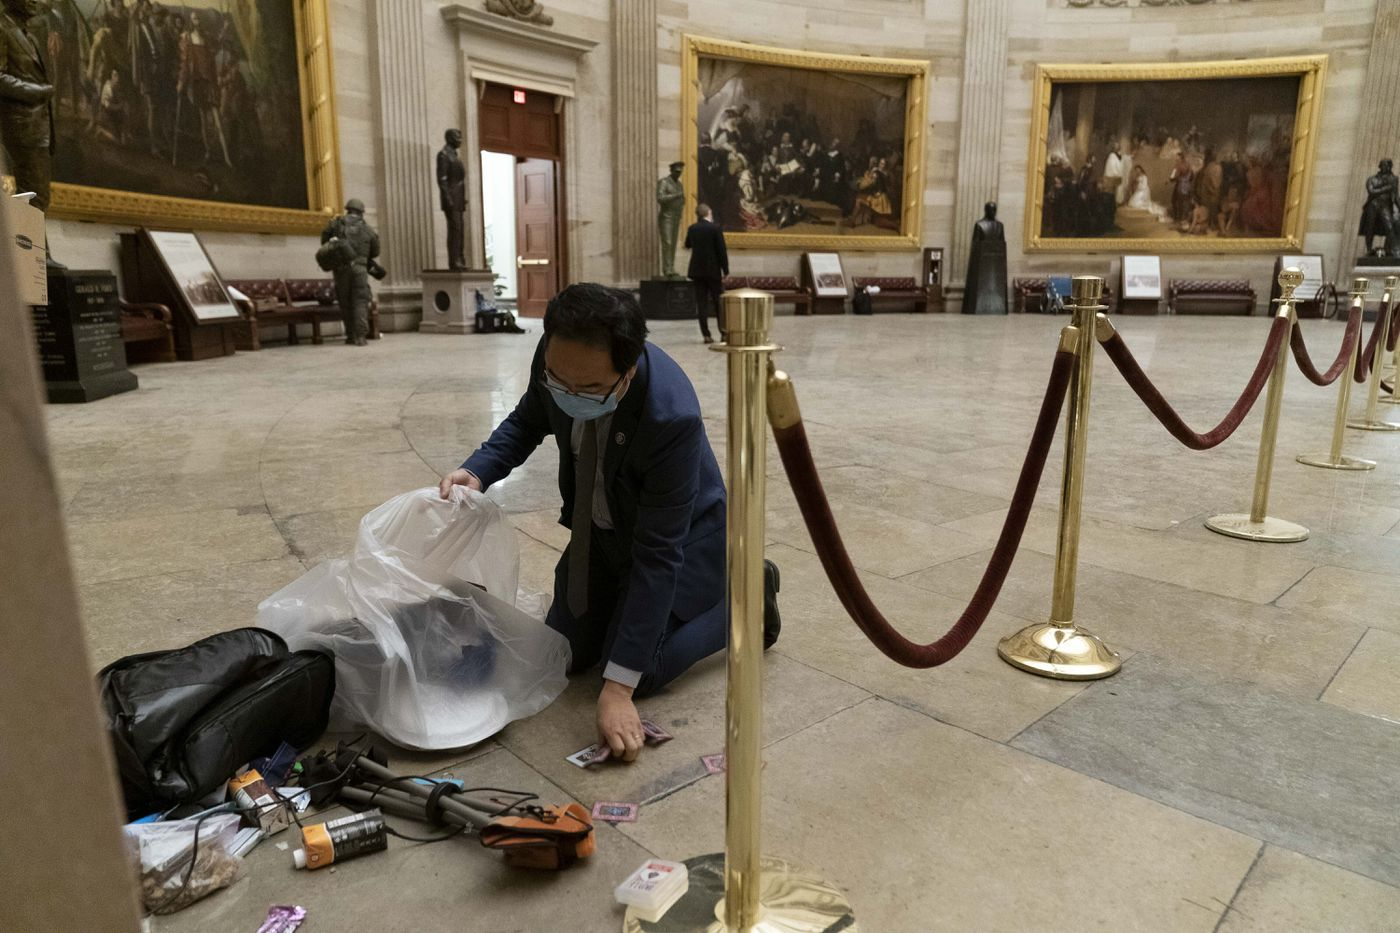 Rep. Andy Kim, D-N.J., cleans up debris and personal belongings strewn across the floor of the Rotunda in the early morning hours of Thursday, Jan. 7, 2021, after protesters stormed the Capitol in Washington, on Wednesday. (AP Photo/Andrew Harnik)